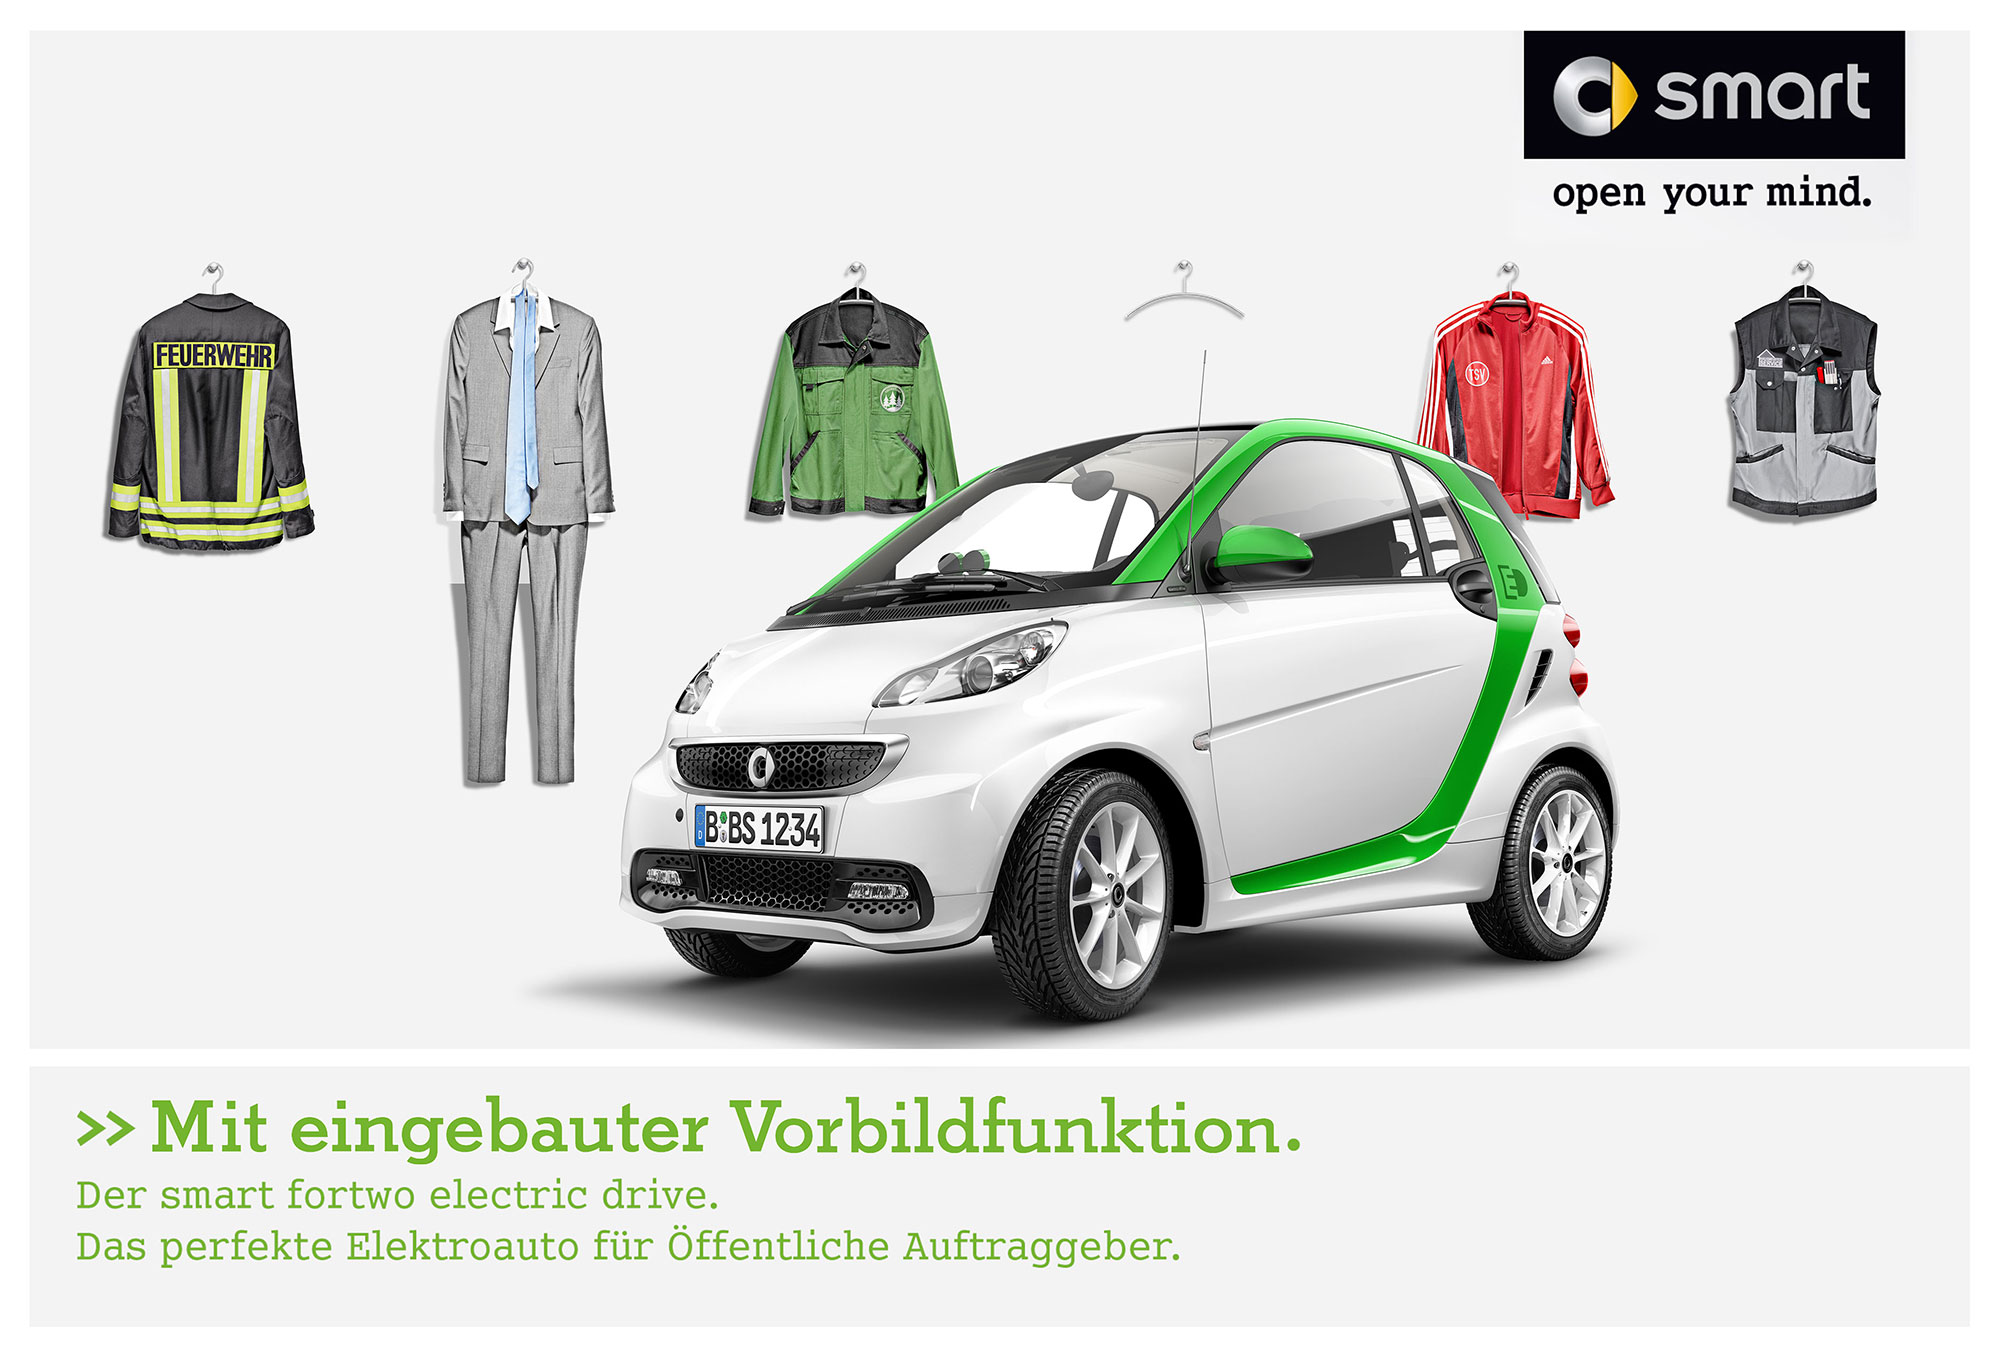 Advertising CGI Rendering 3d Still life Photographie Fotografie Studio Arbeitskleidung Vorbildfunktion Smart Fortwo Electric Drive Transportation Auto Studio Front Idris Kolodziej